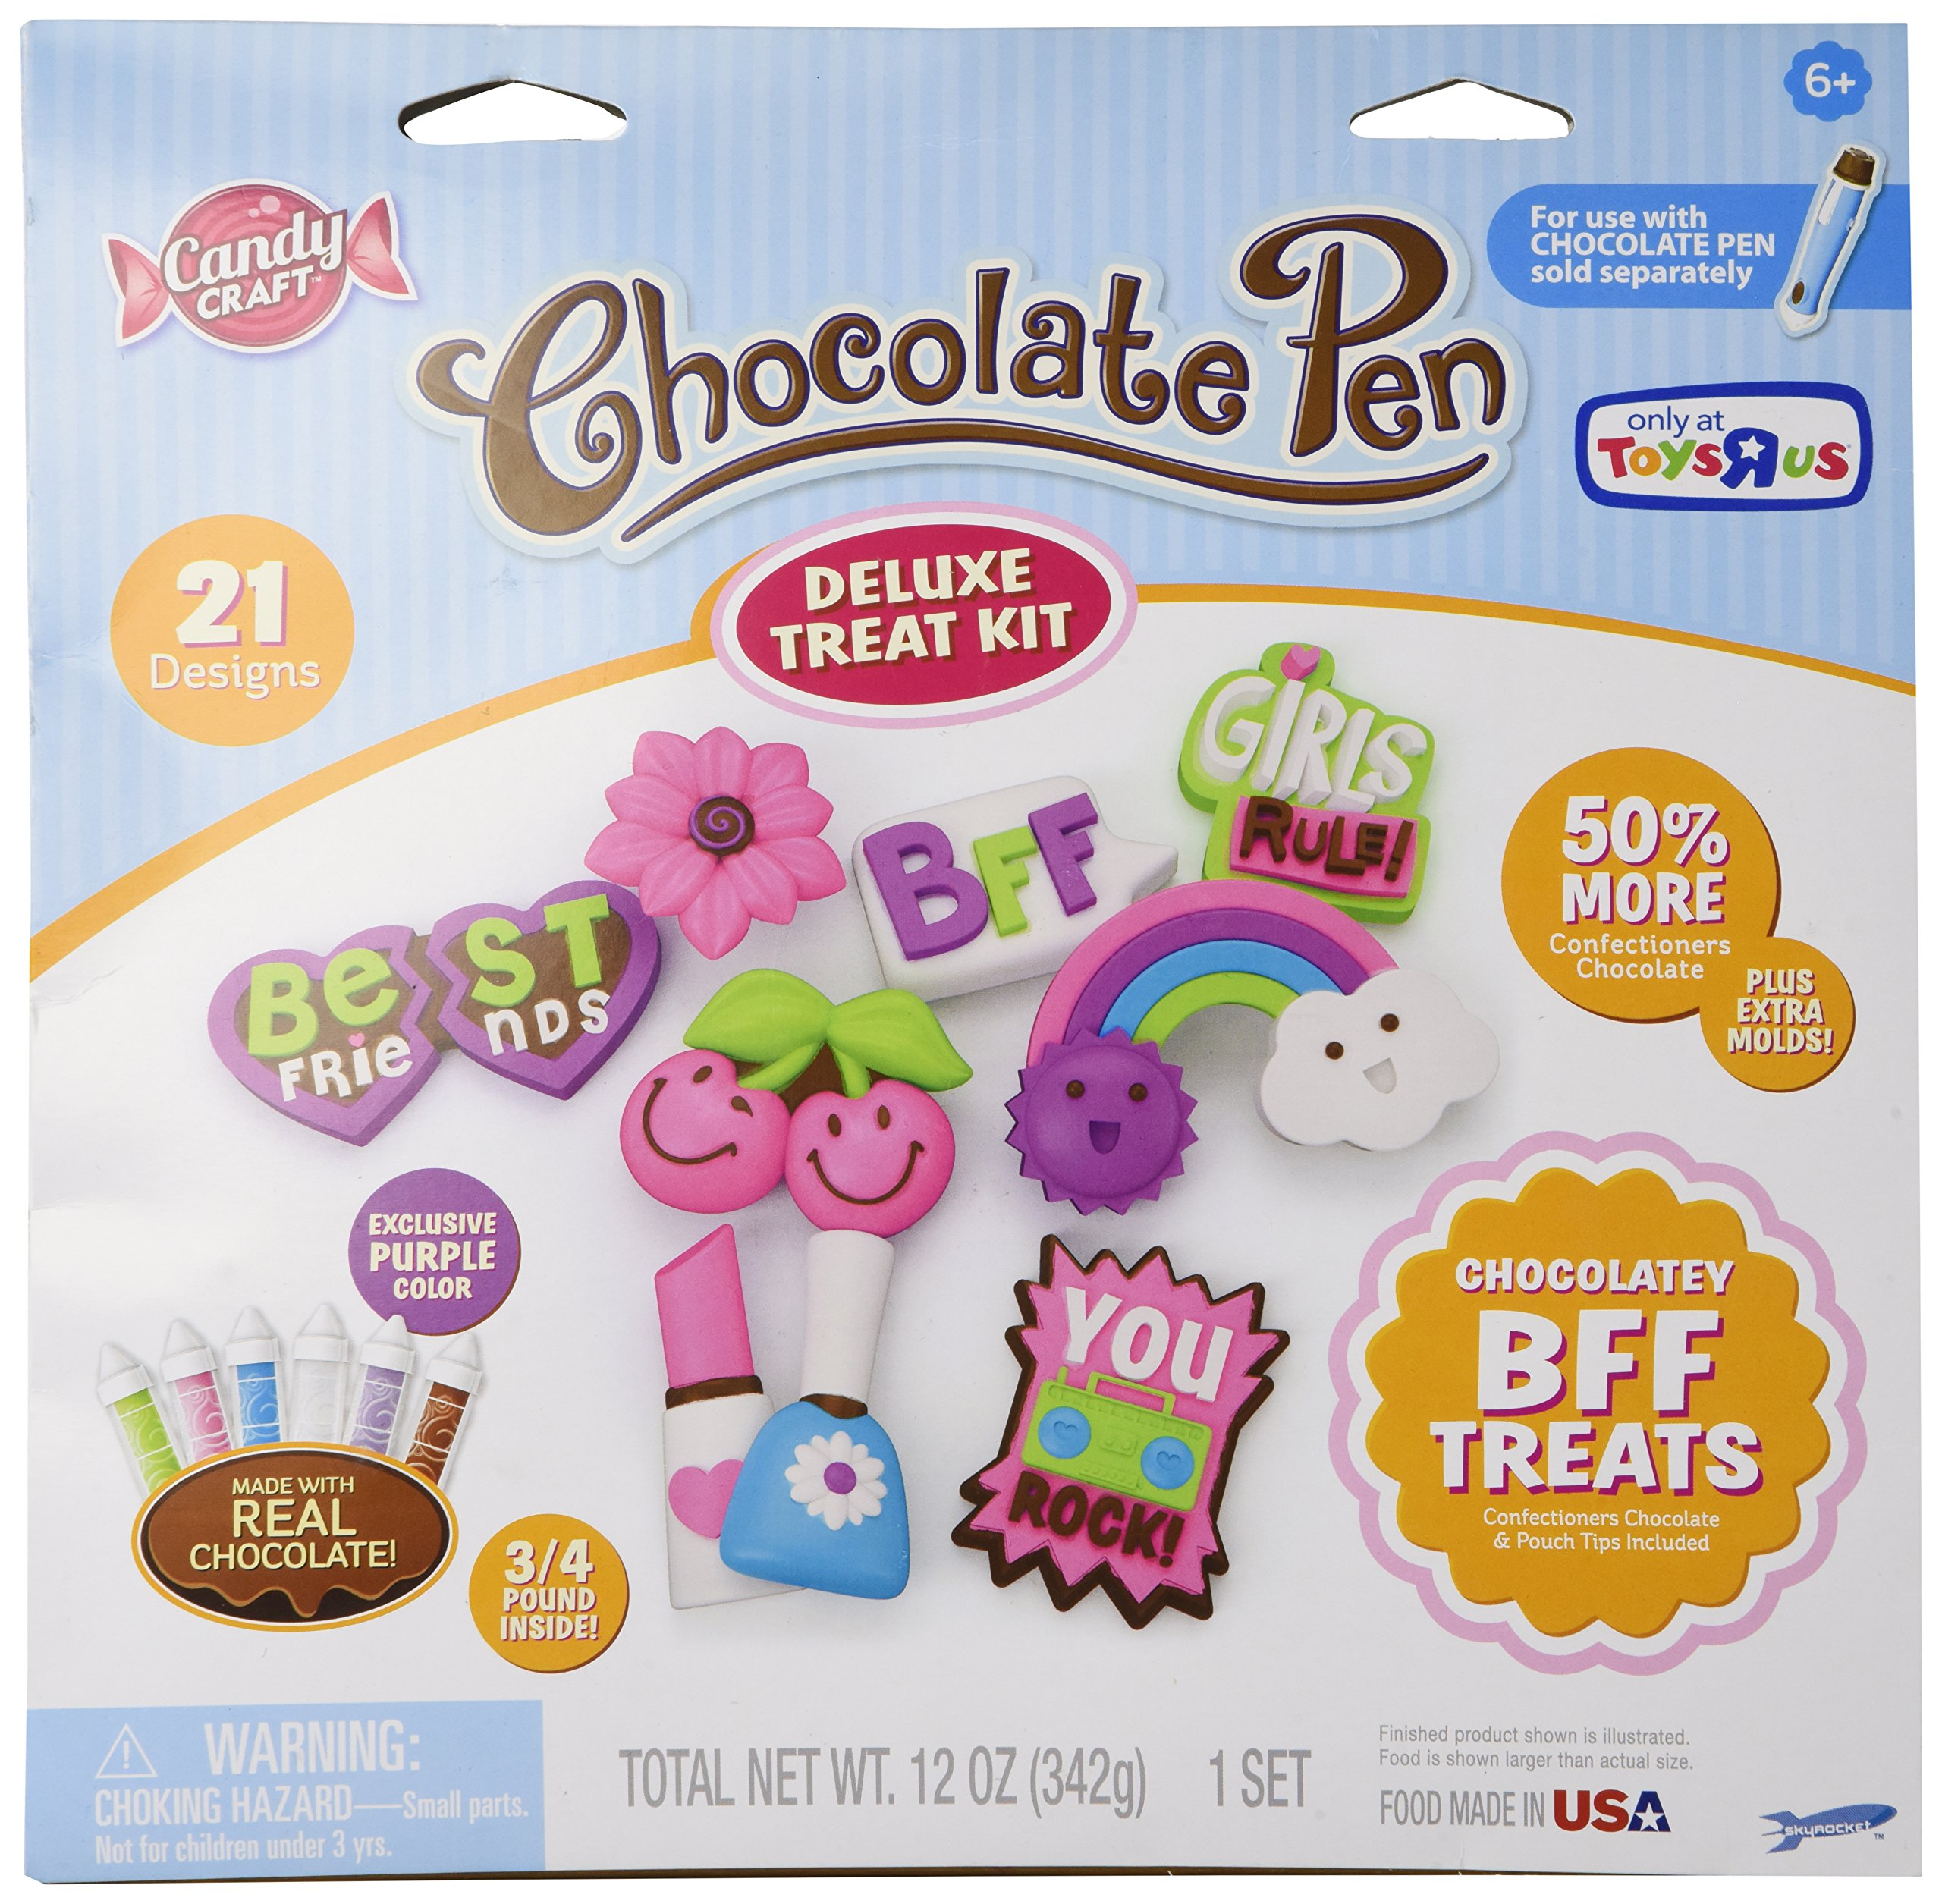 Candy Craft Chocolate Pen Deluxe Treat Kit 21 Designs Chocolatey BFF Treats Exclusive Purple Color